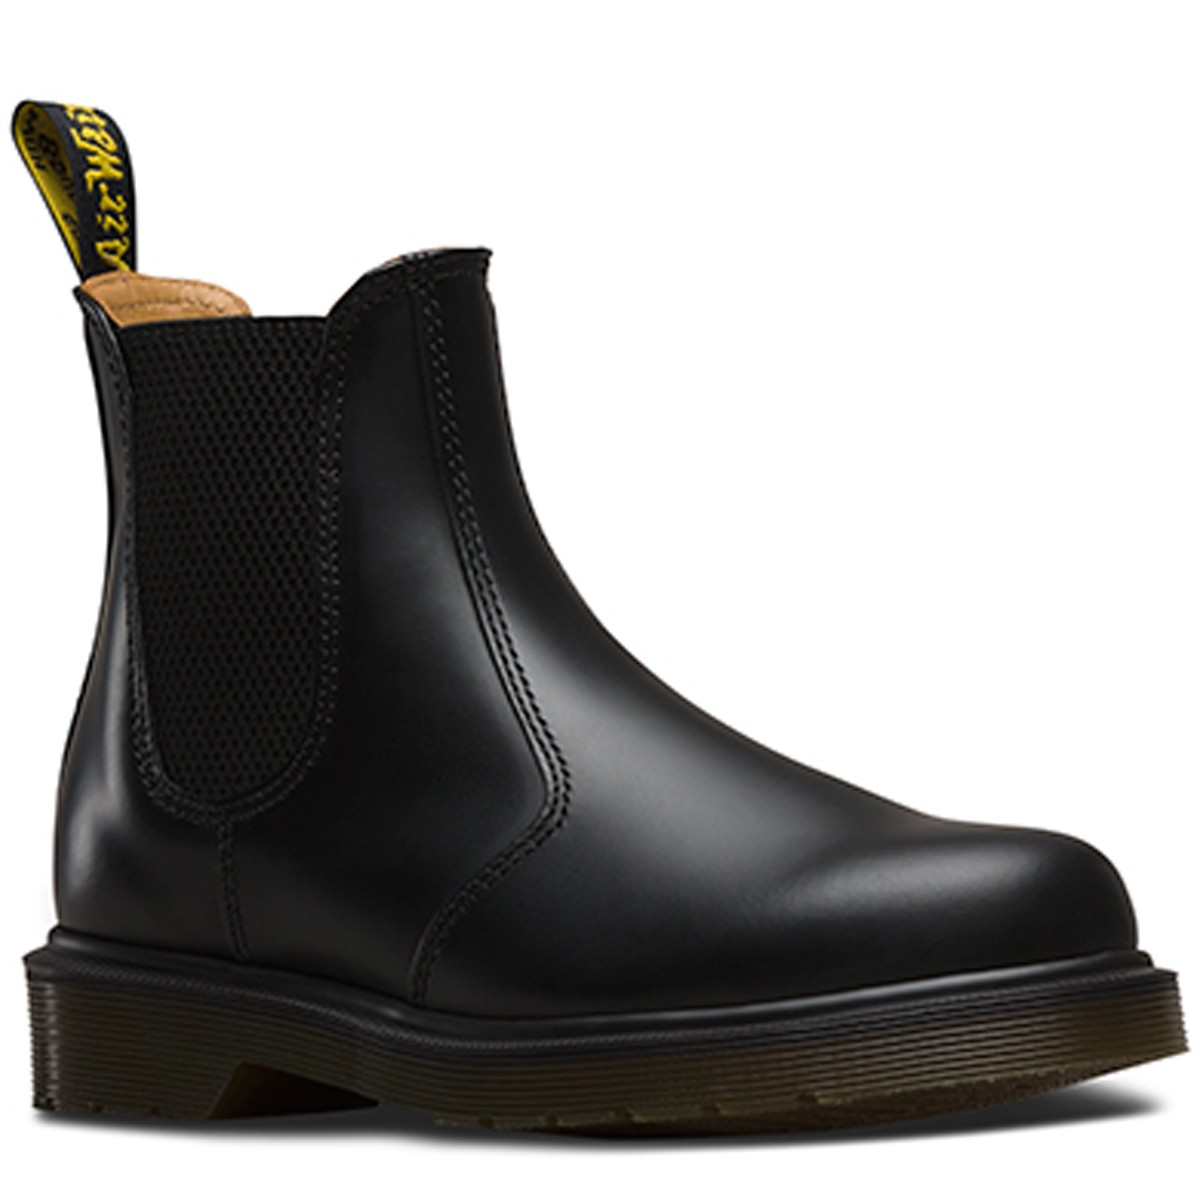 2976 Chelsea Boot Black Smooth